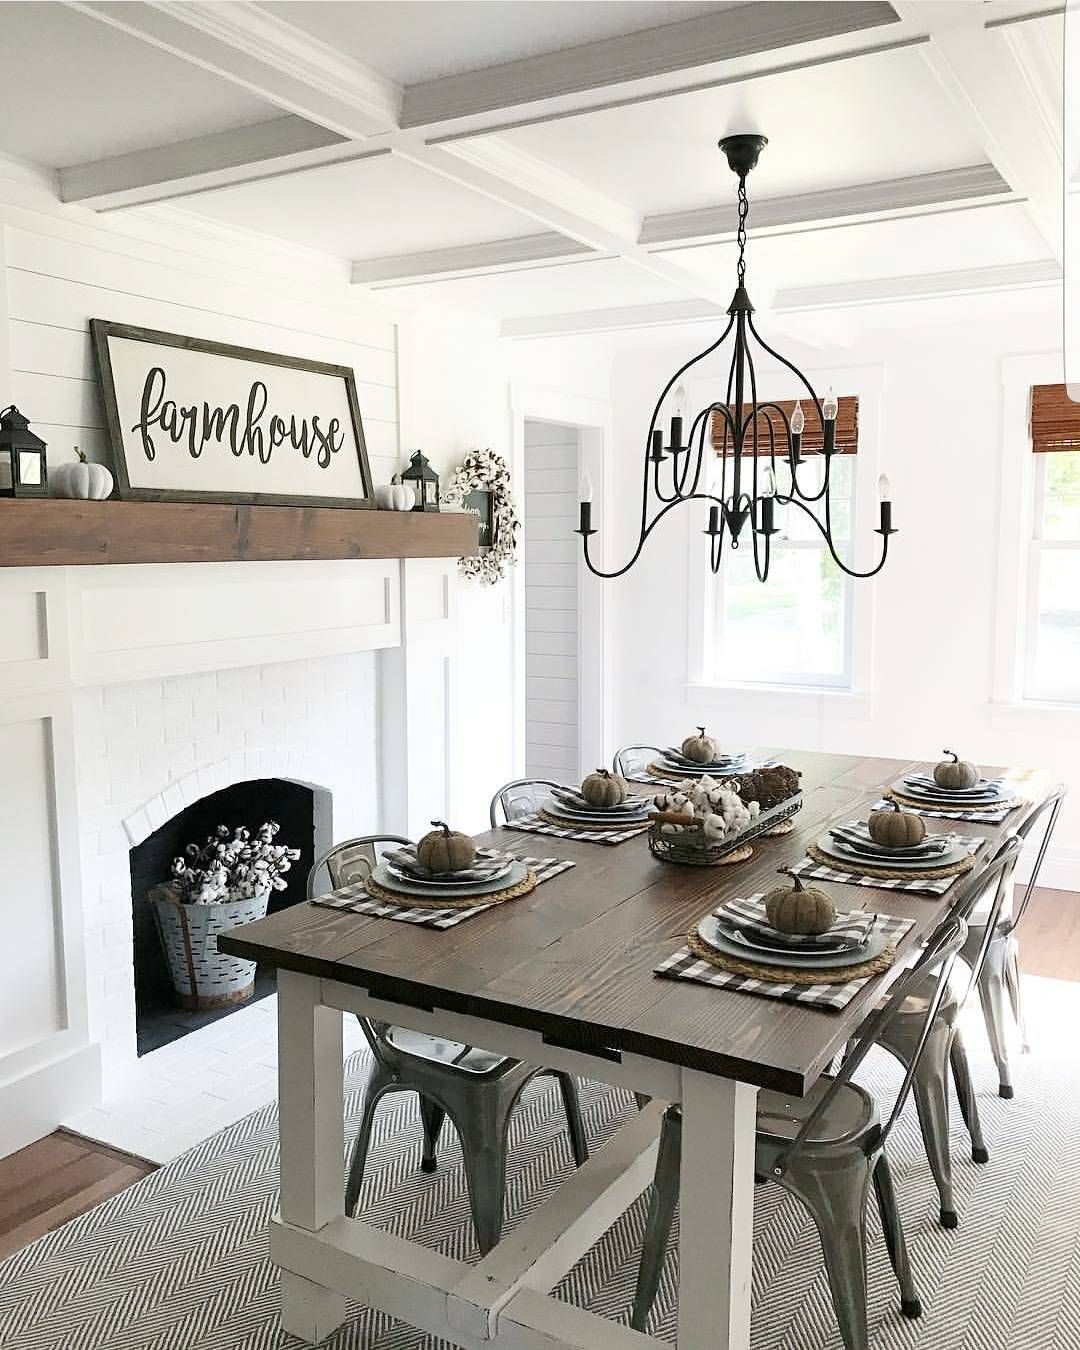 Farmhouse Design Fixer Upper Style Wood Furniture Light